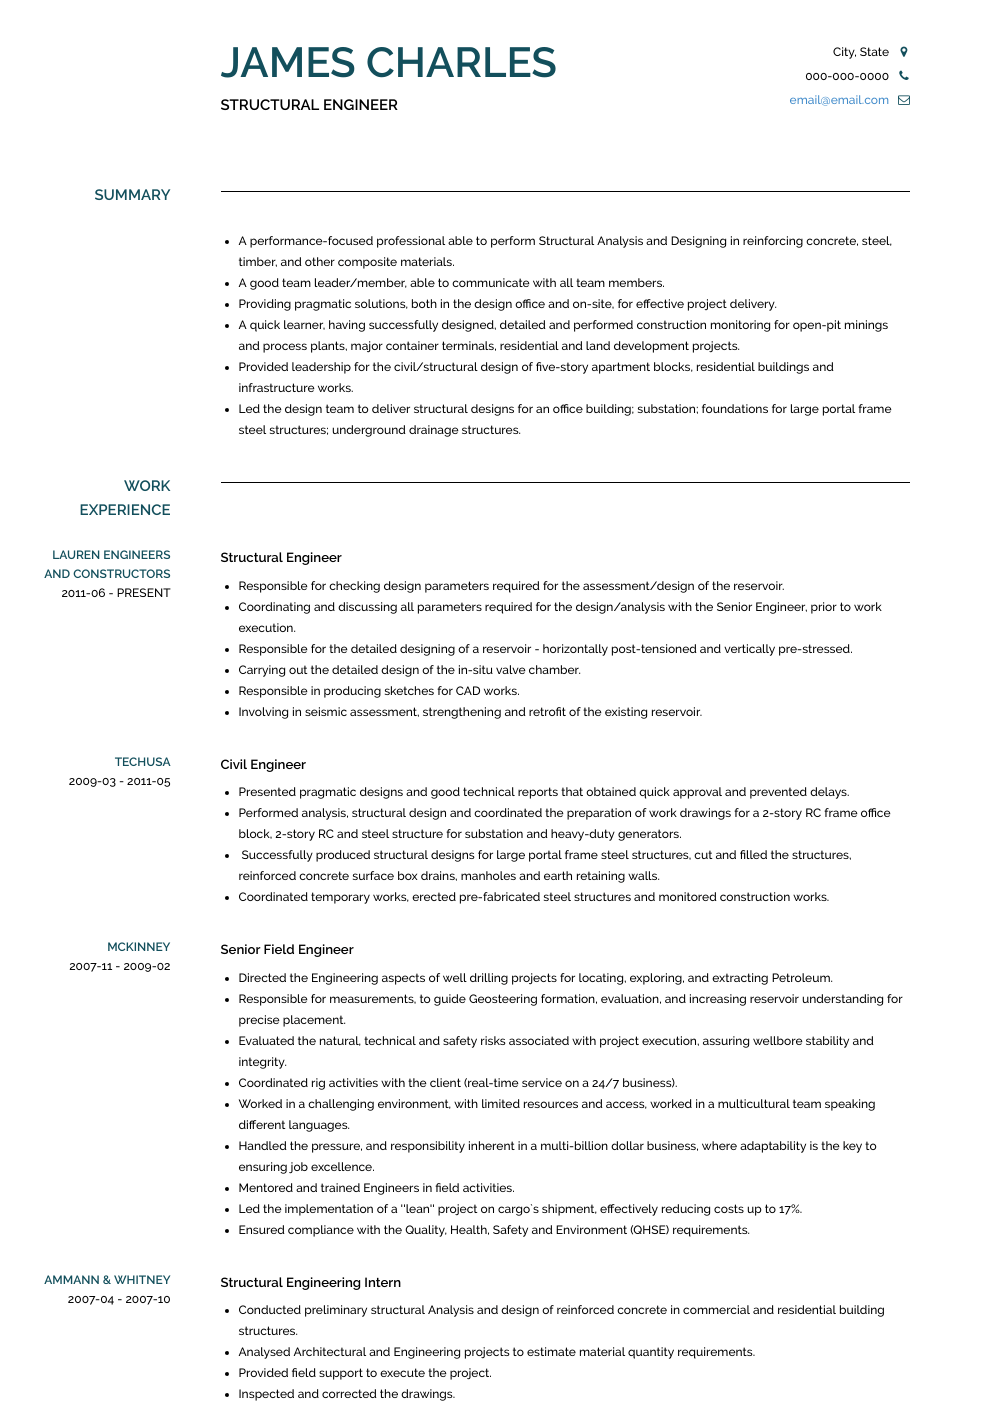 Structural Engineer - Resume Samples and Templates | VisualCV